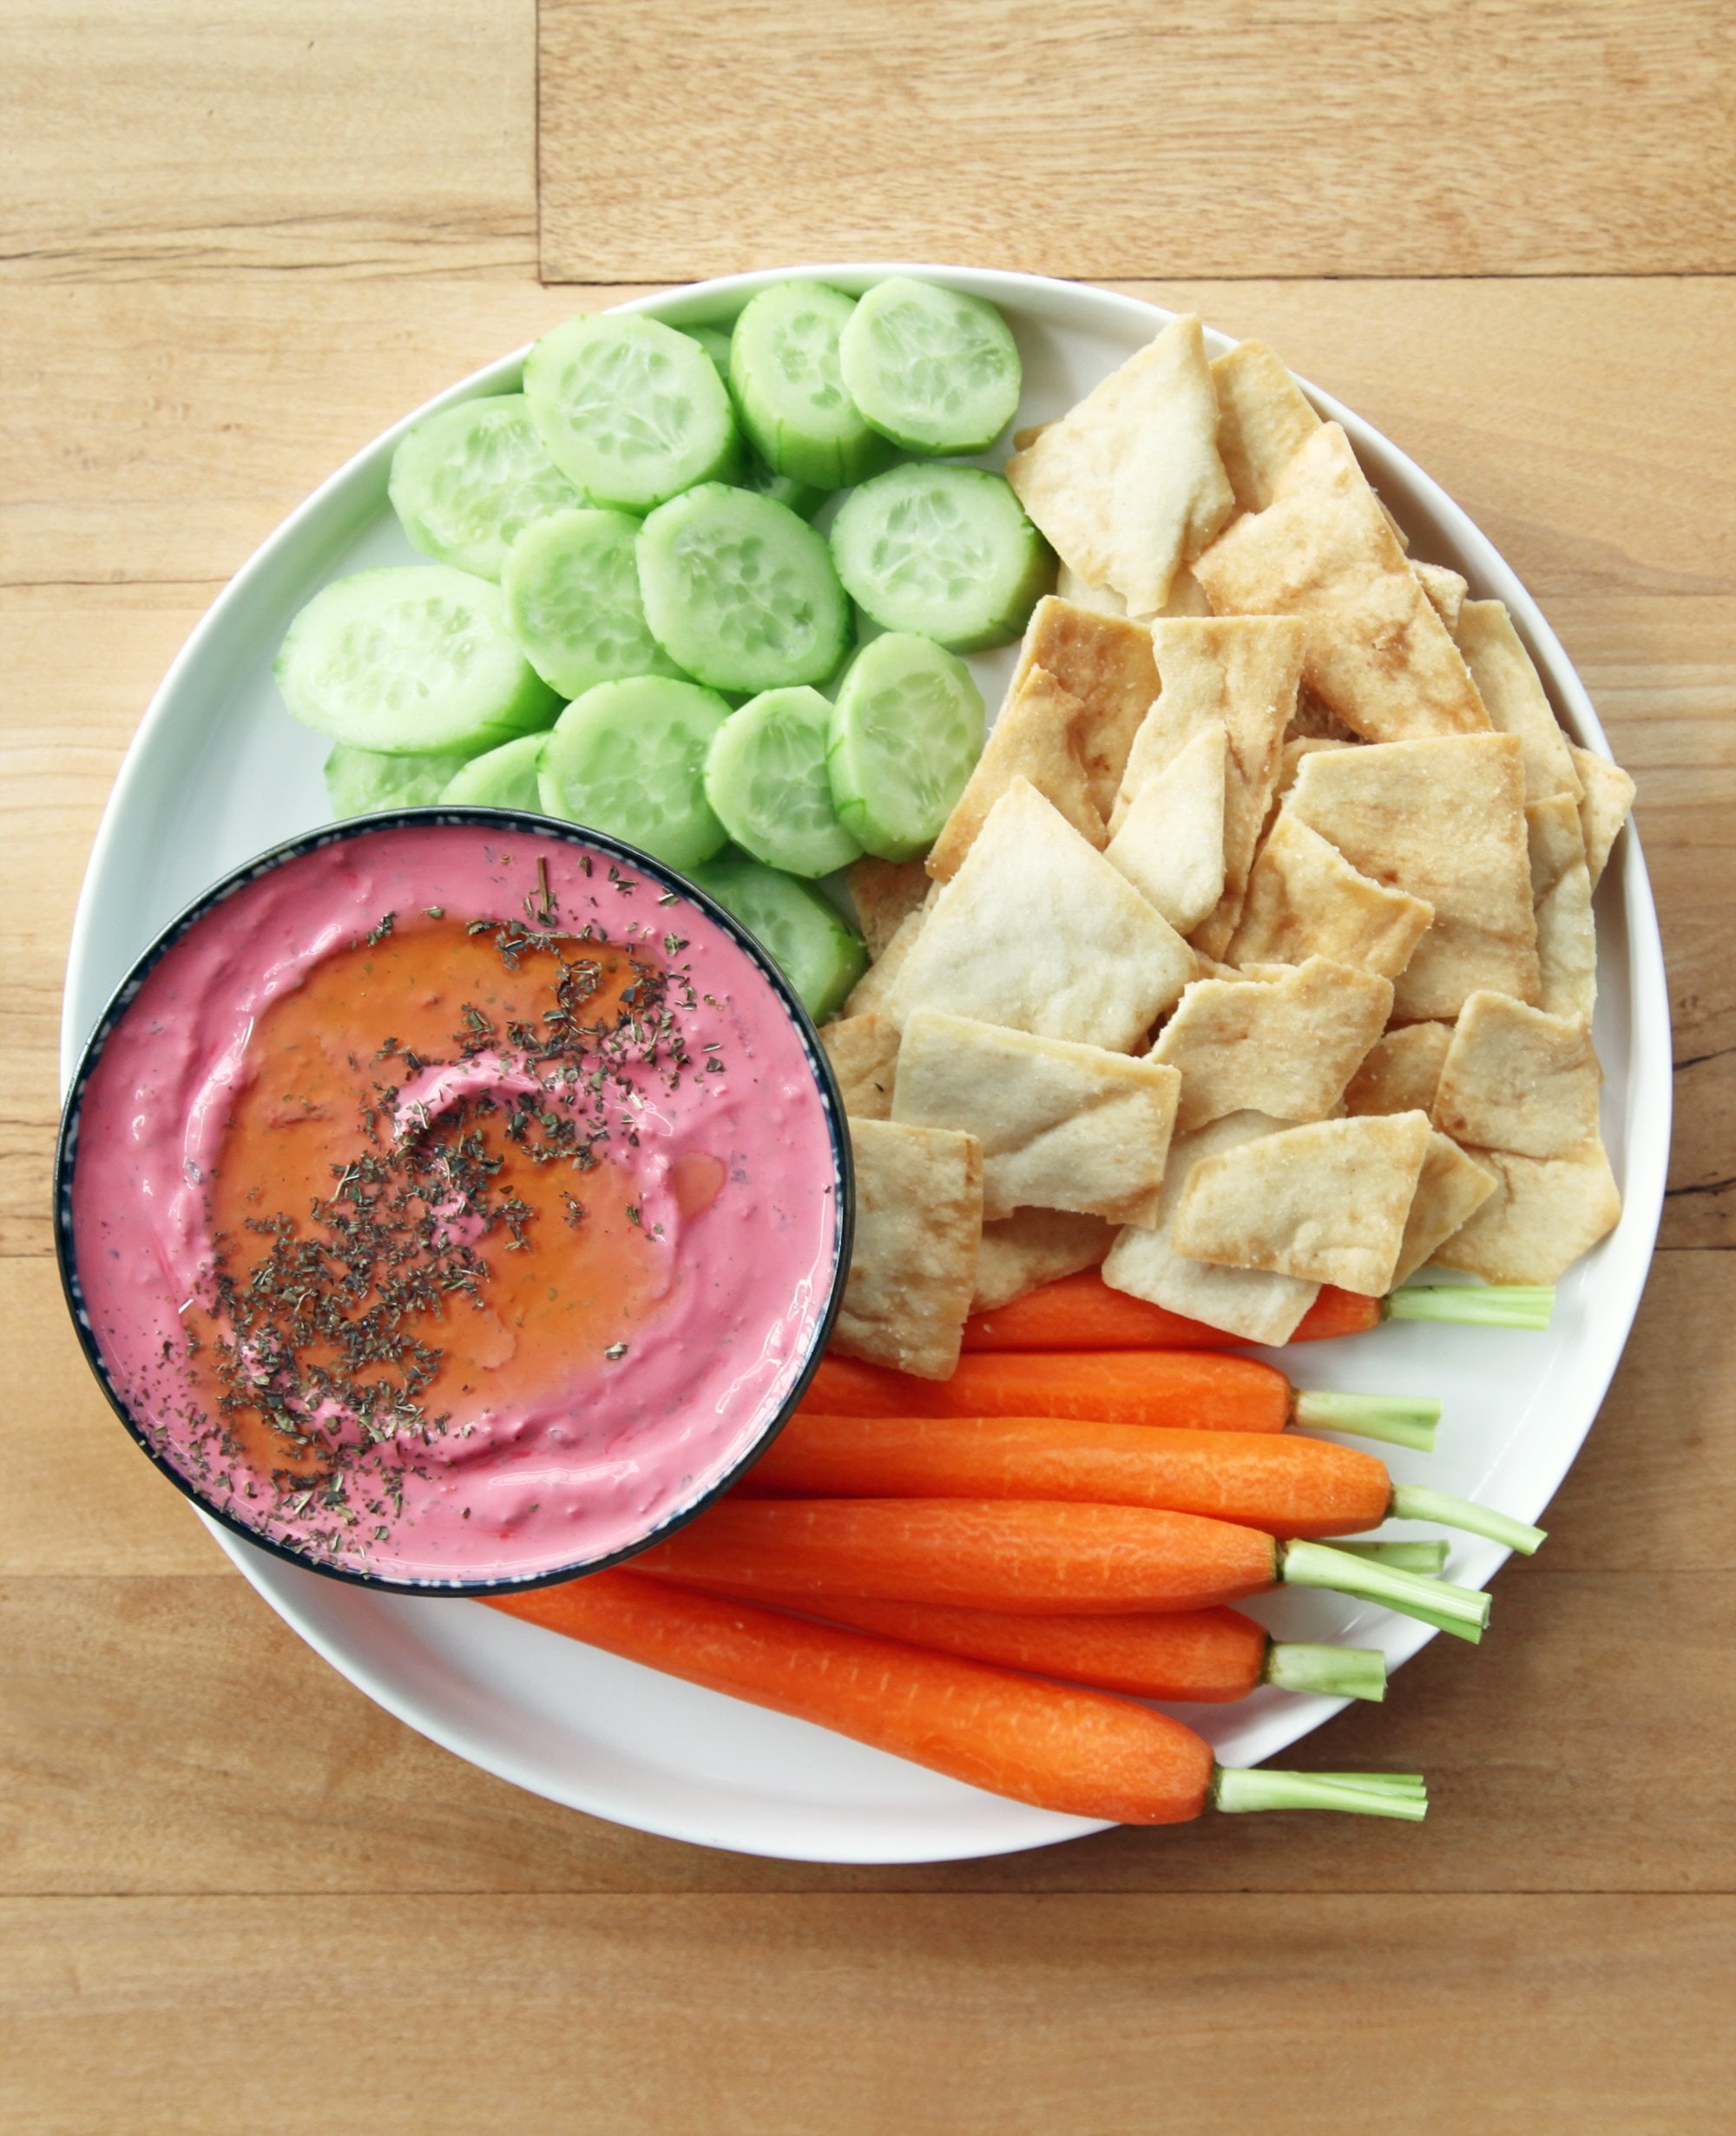 Healthy lunch box options popsugar moms as much as you may pooh pooh school lunches a study published in jama pediatrics reported that lunches packed at home were less nutritious sisterspd